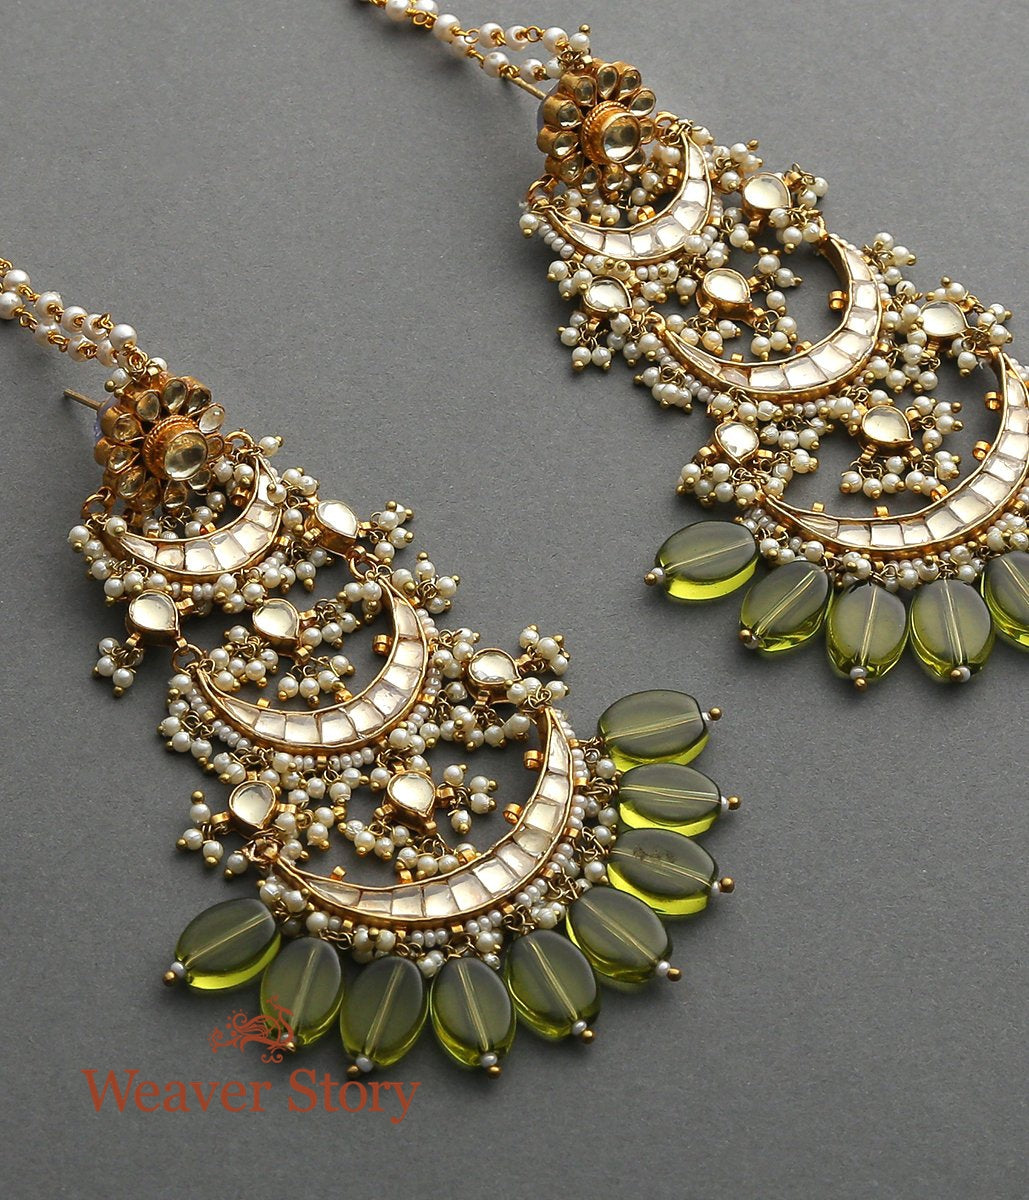 Golden Dangller Earrings with Peridot Stones